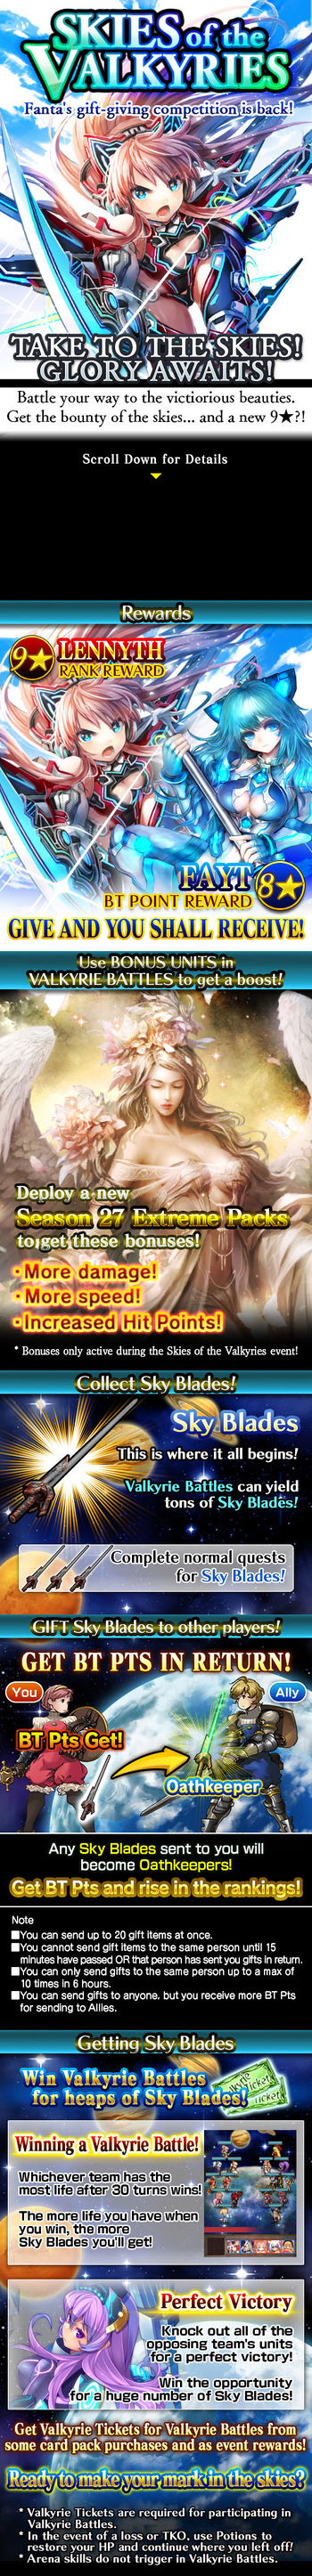 Skies of the Valkyries release.jpg